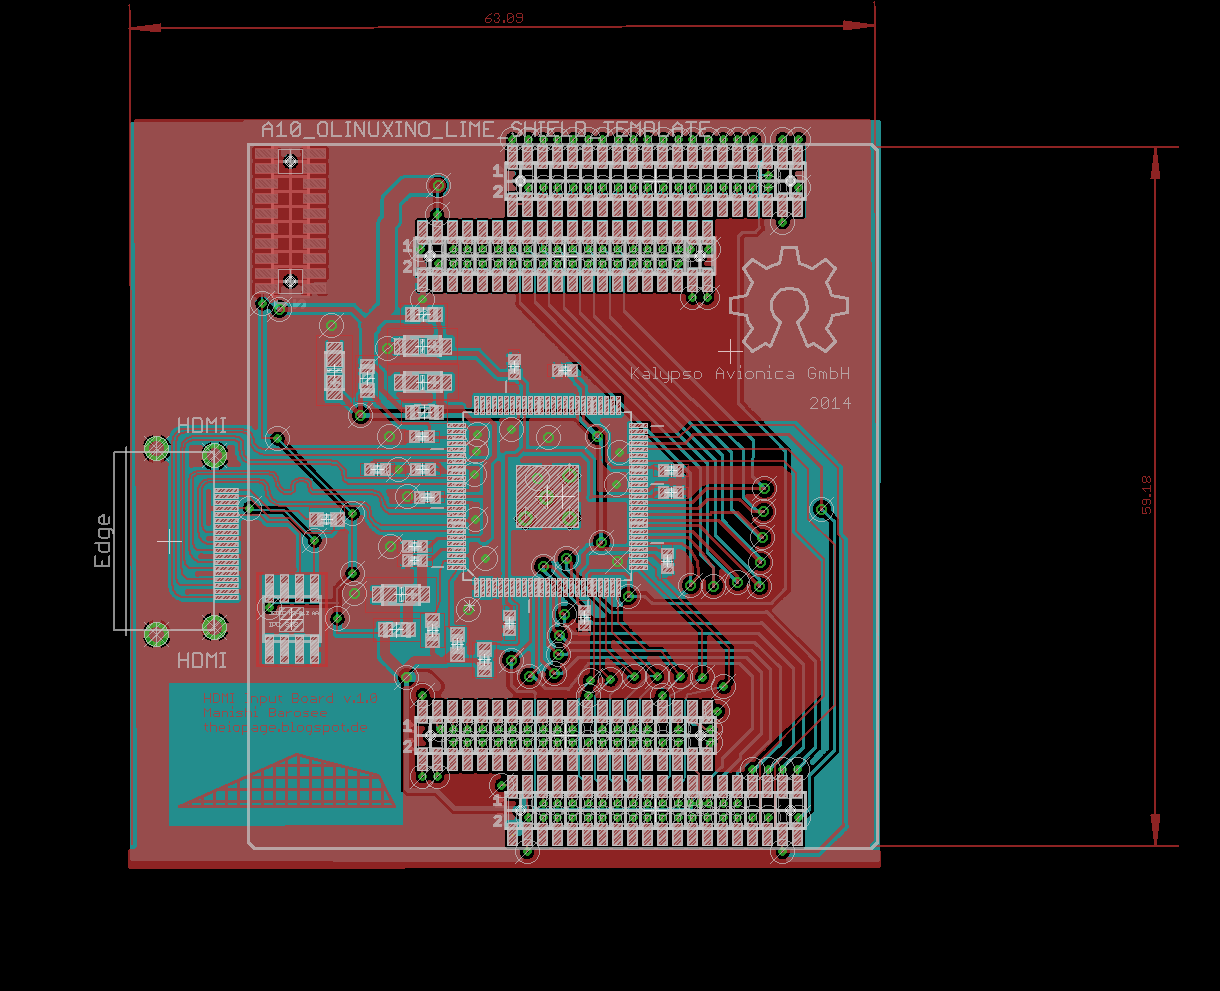 I O Blog Professional Double Layer Electronic Circuit Board Assembly For H264 What That Implies Is We Can Theoretically Feed A Full Hd Video Stream To The Ipu Of Soc Encode It And Livestream